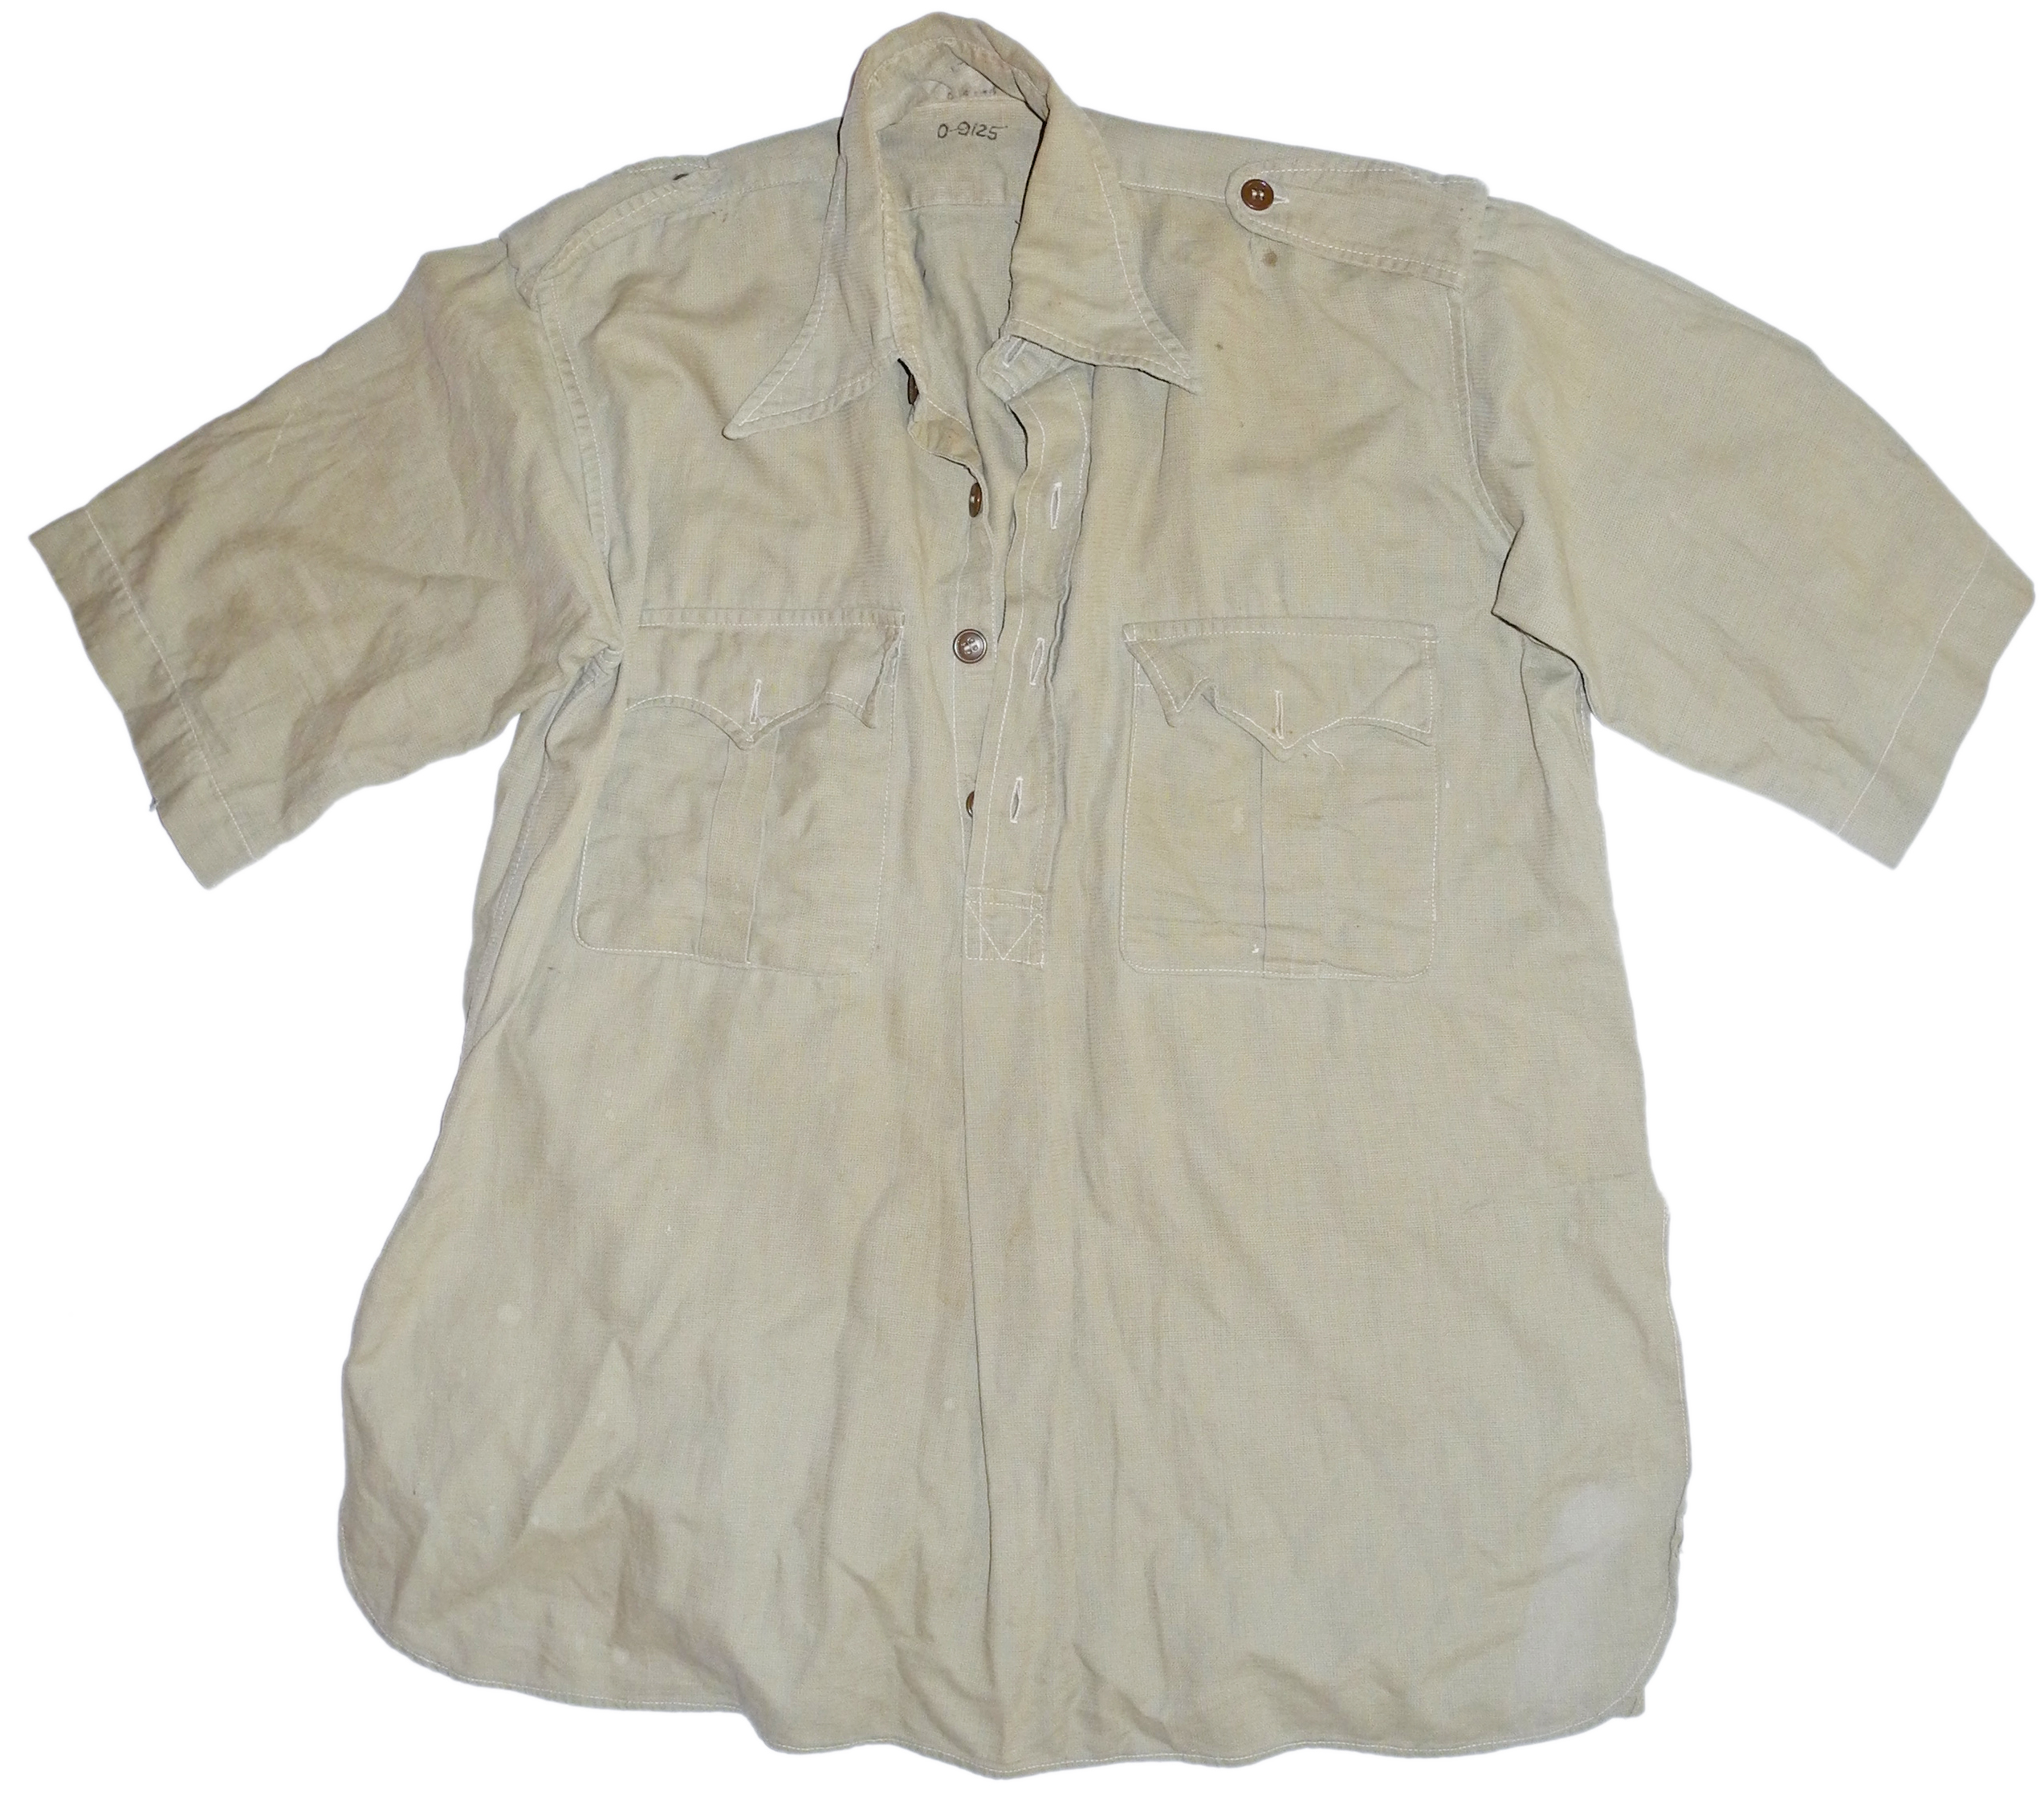 RAF / army bush shirt short-sleeved